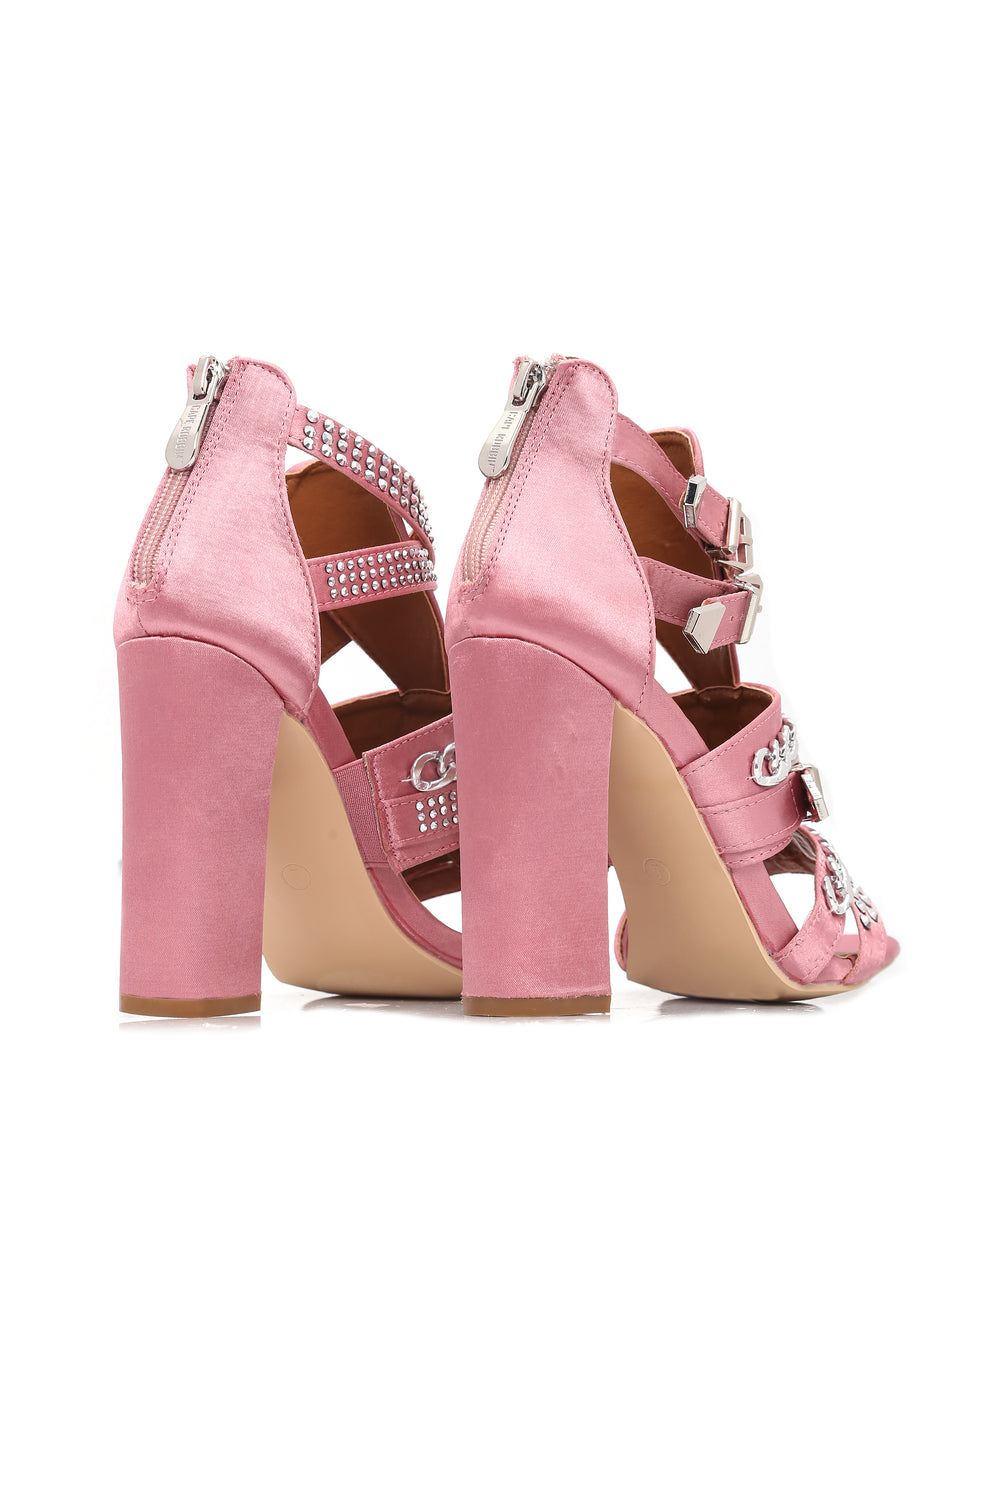 Almost Fell In Love Heel - Mauve